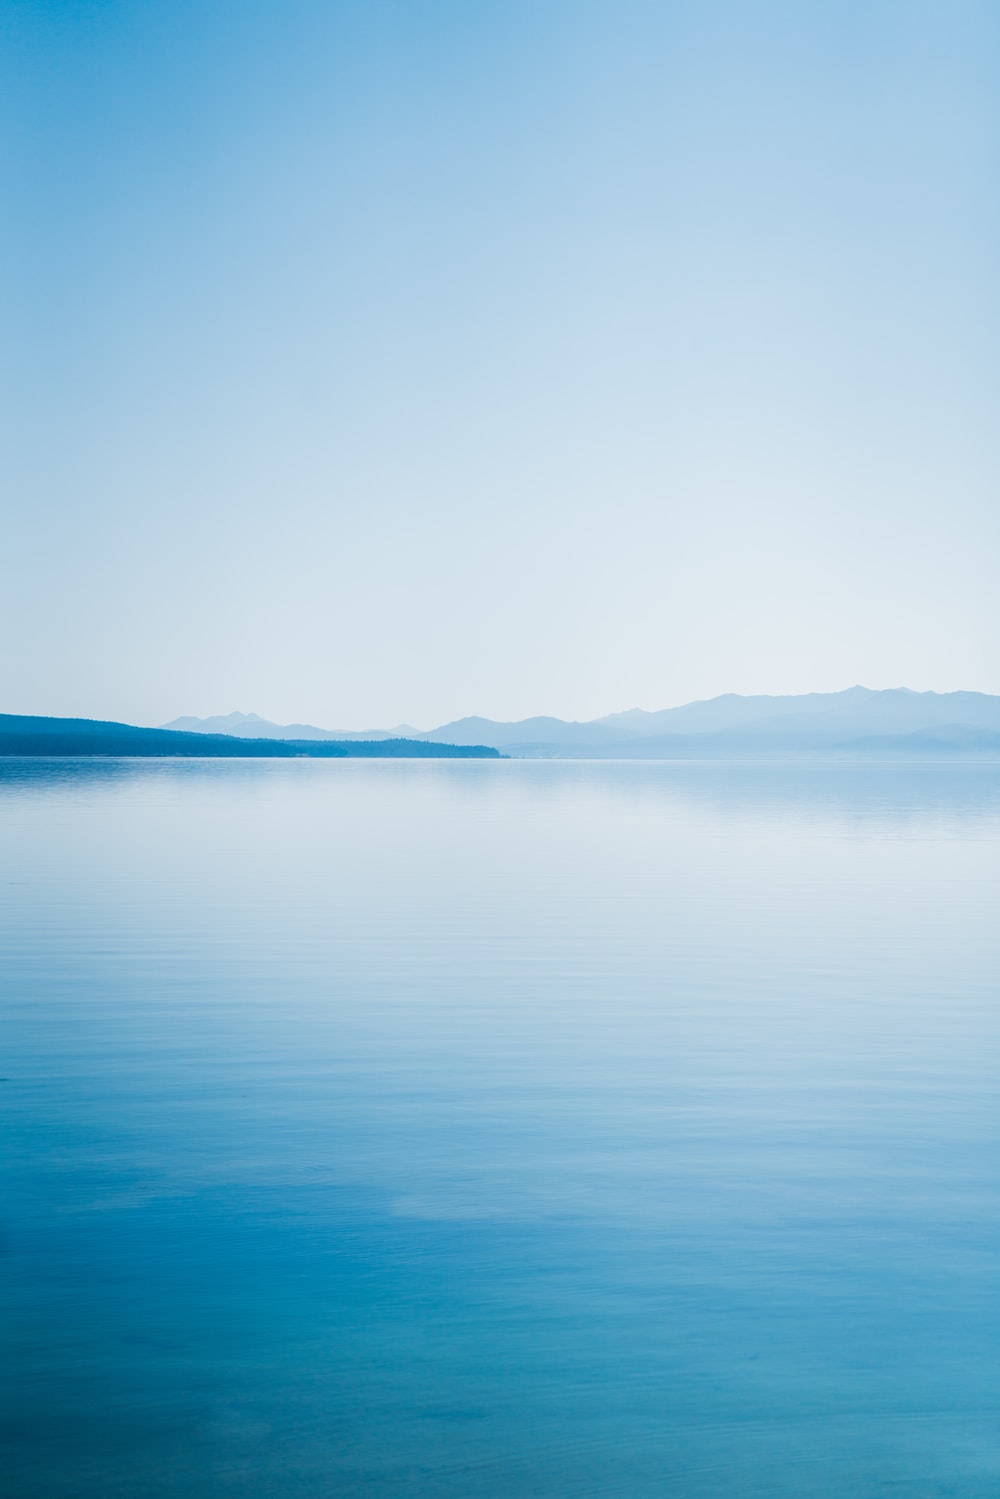 blue body of water under white sky during daytime